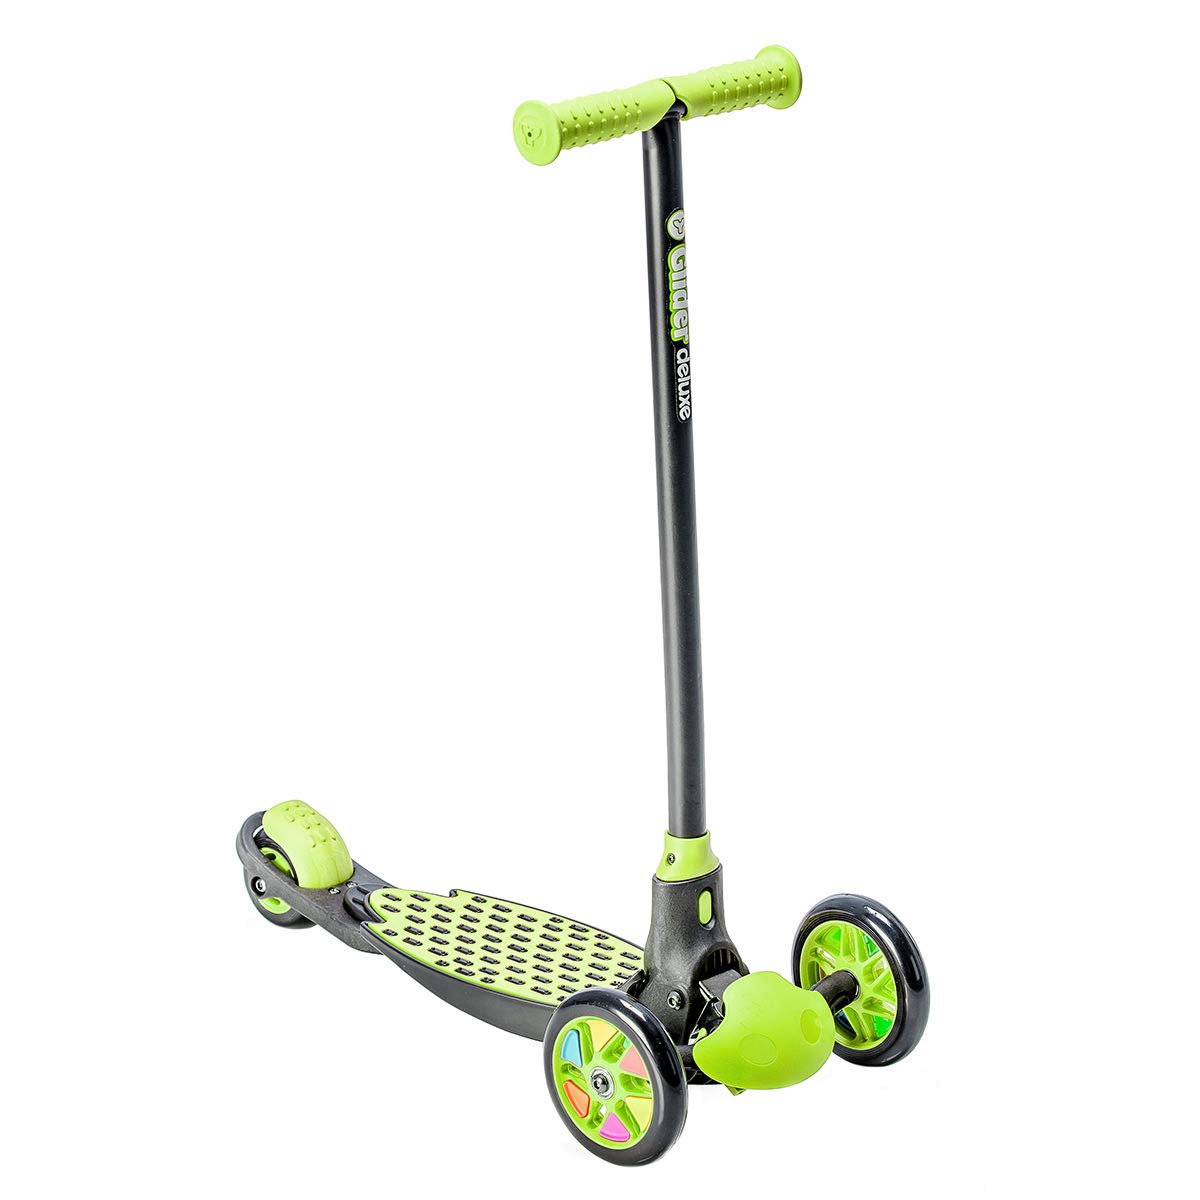 Yvolution Y Glider Deluxe | Three Wheel Kick Scooter for Kids with Safety Brake for Children Ages 3+ Years (Green) by Yvolution